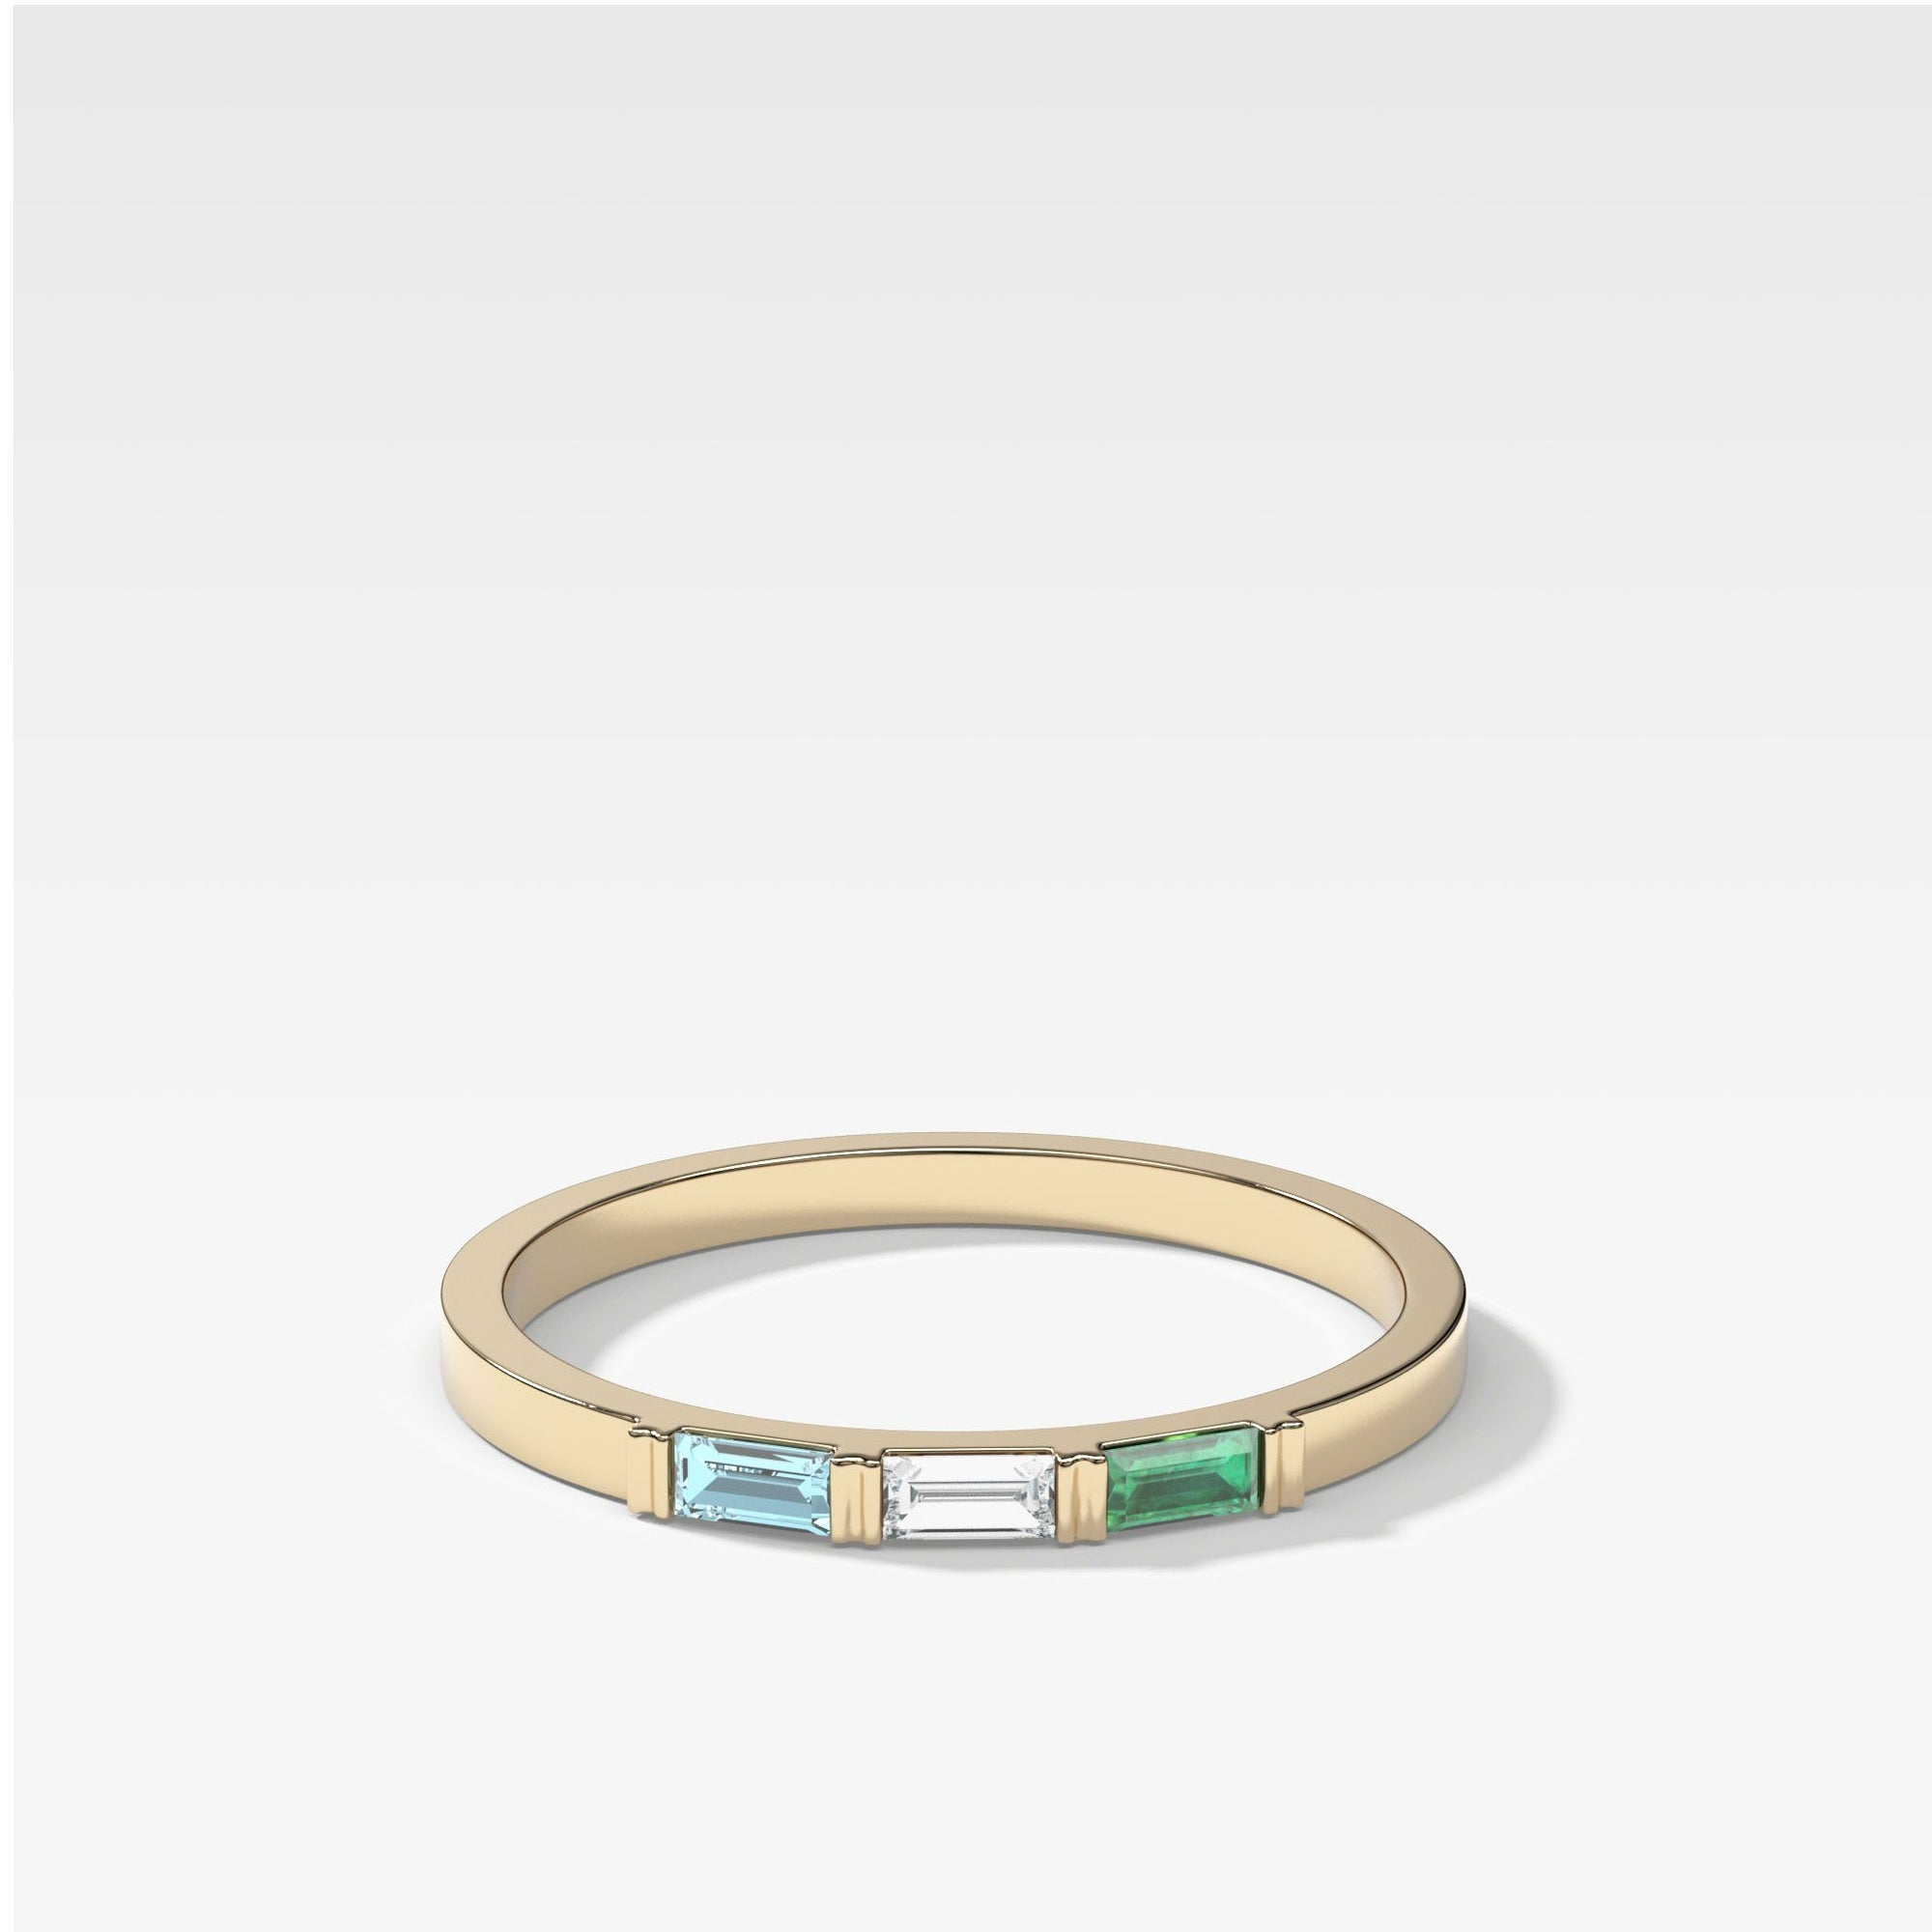 Three Stone Baguette Stacker in Yellow Gold by Good Stone